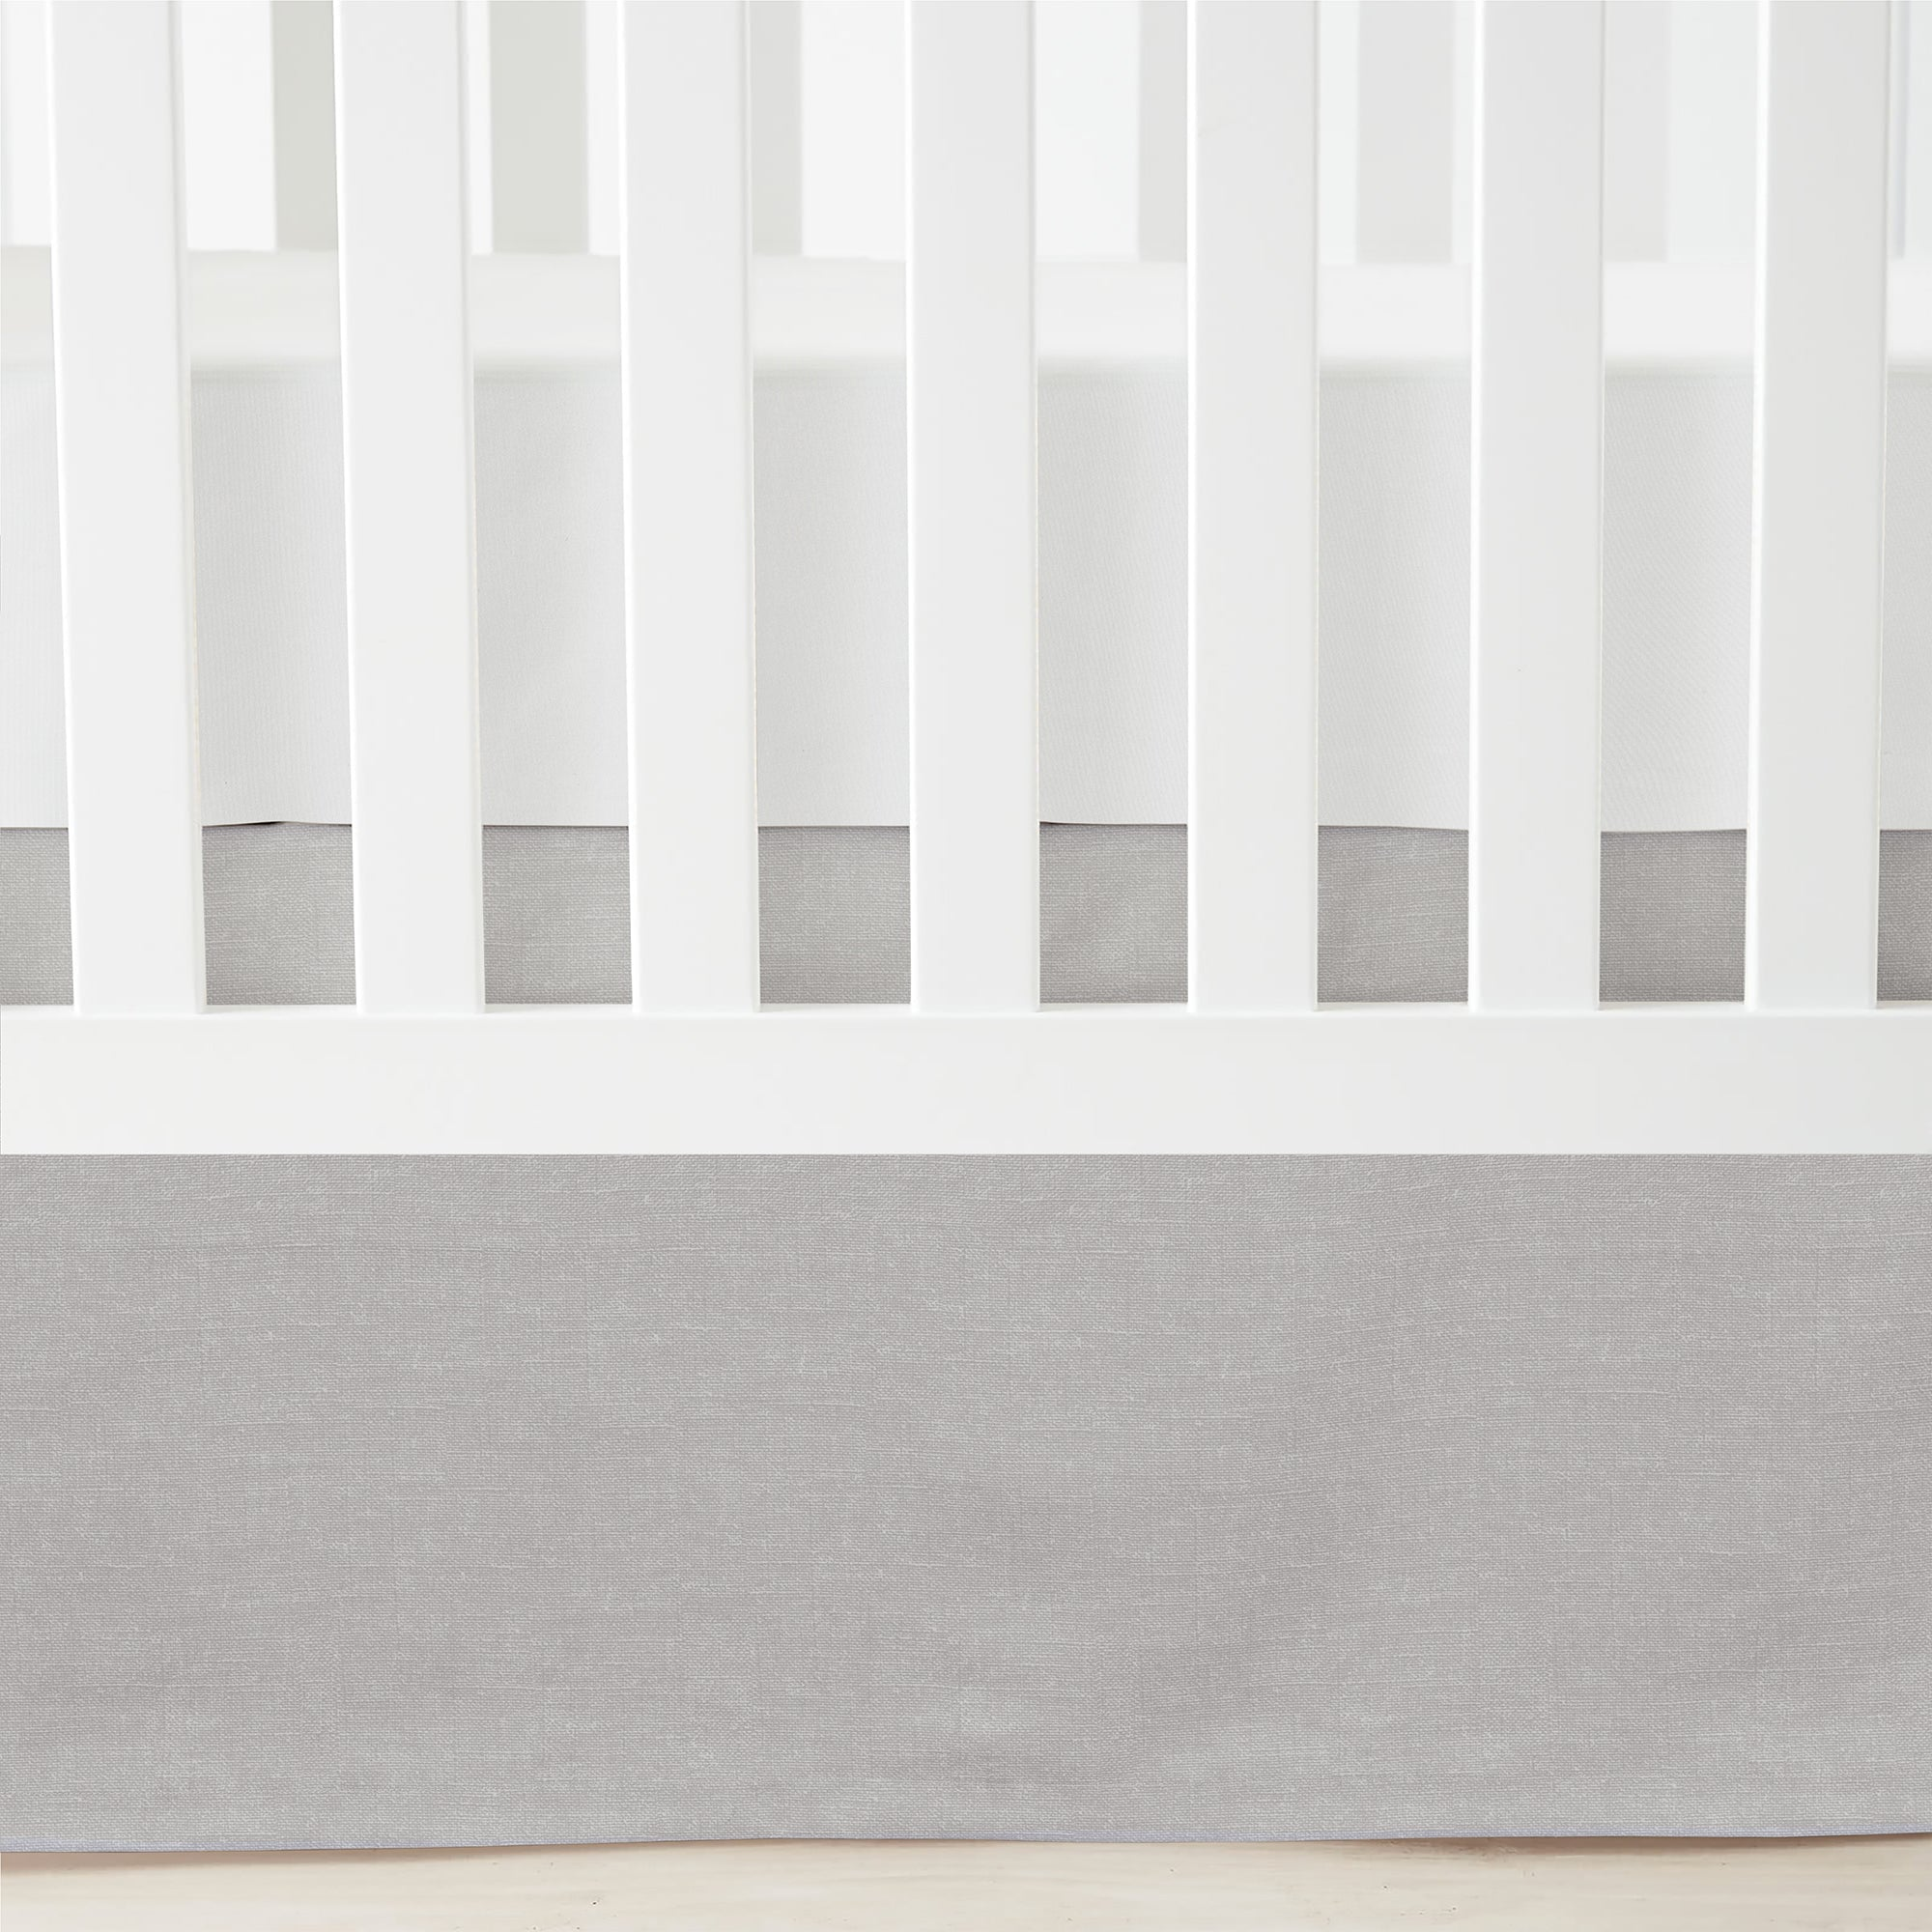 Printed Linen Textured Solid Crib Skirt